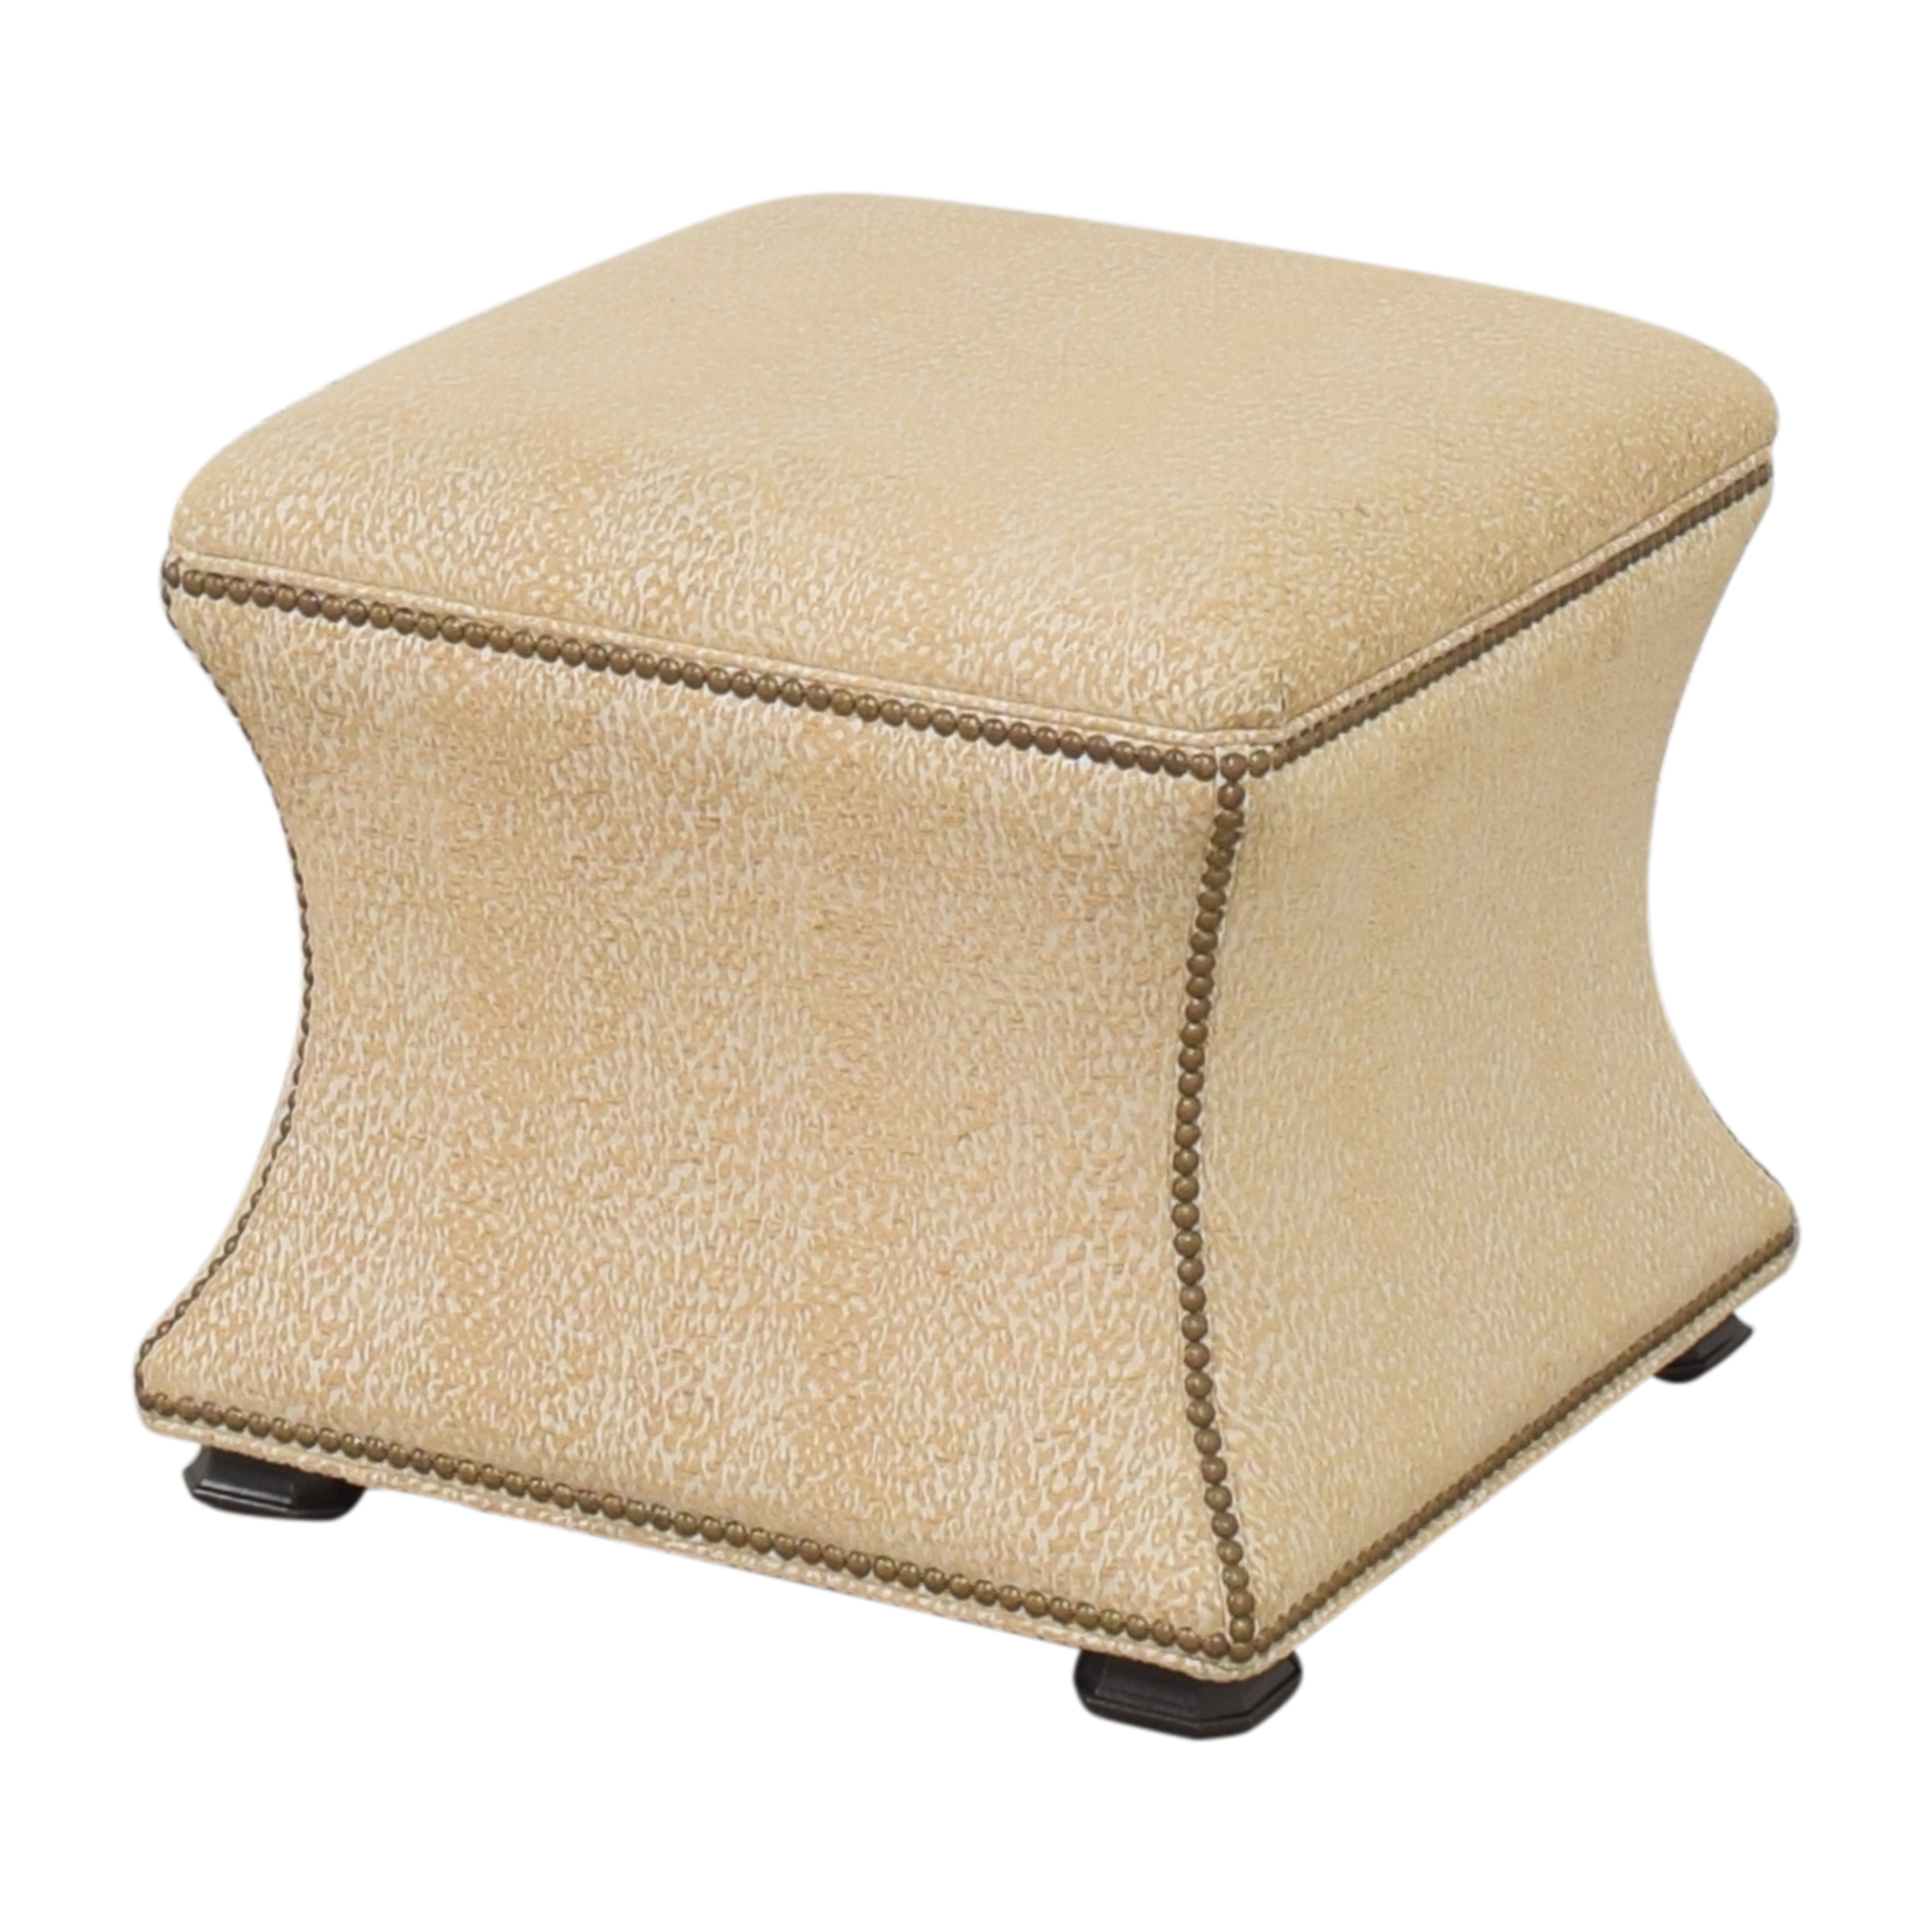 Ethan Allen Square Ottoman / Chairs